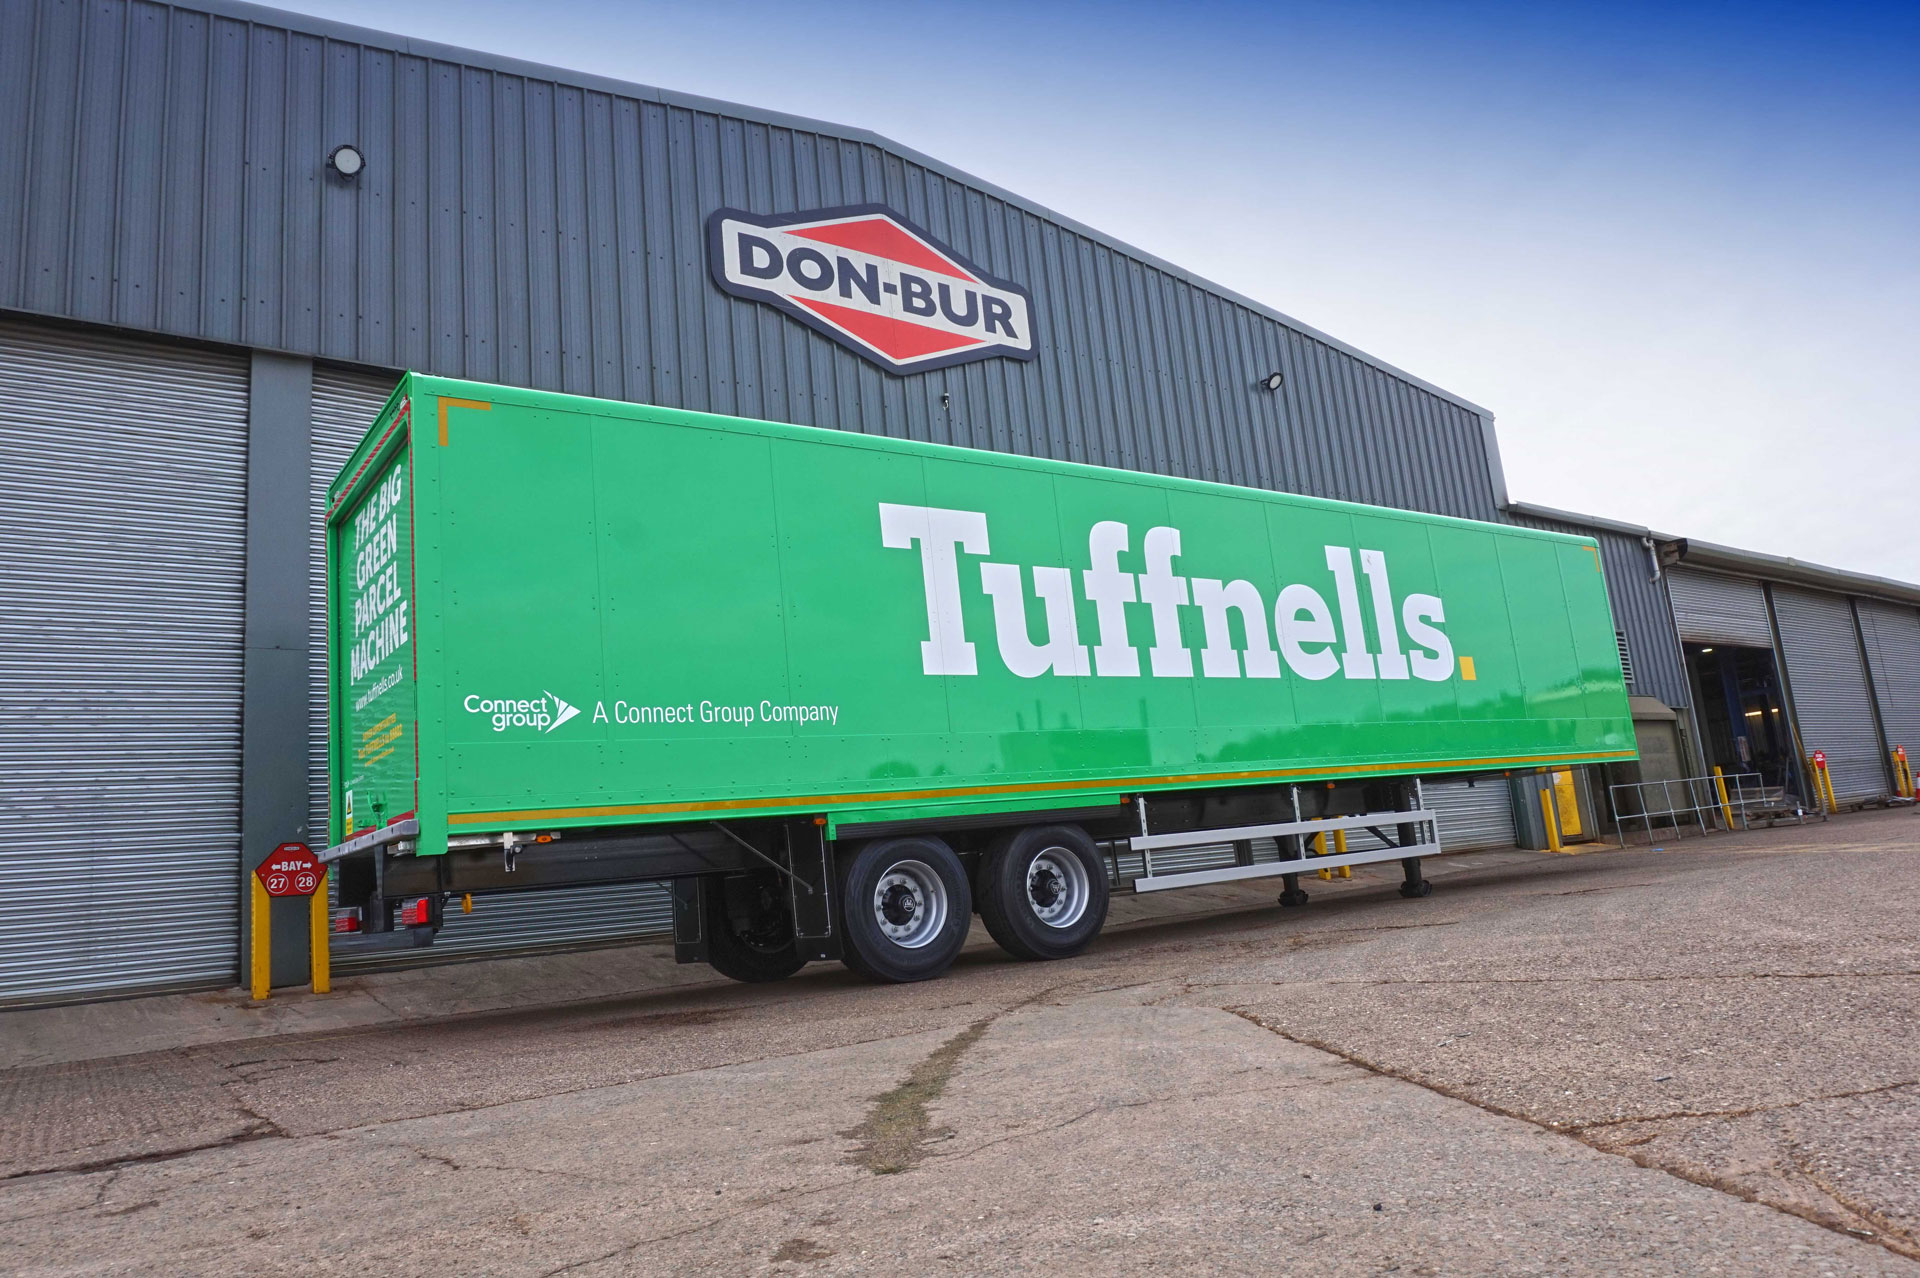 Tuffnells Teams Up With Don-Bur For Fleet Of New Semi-Trailers